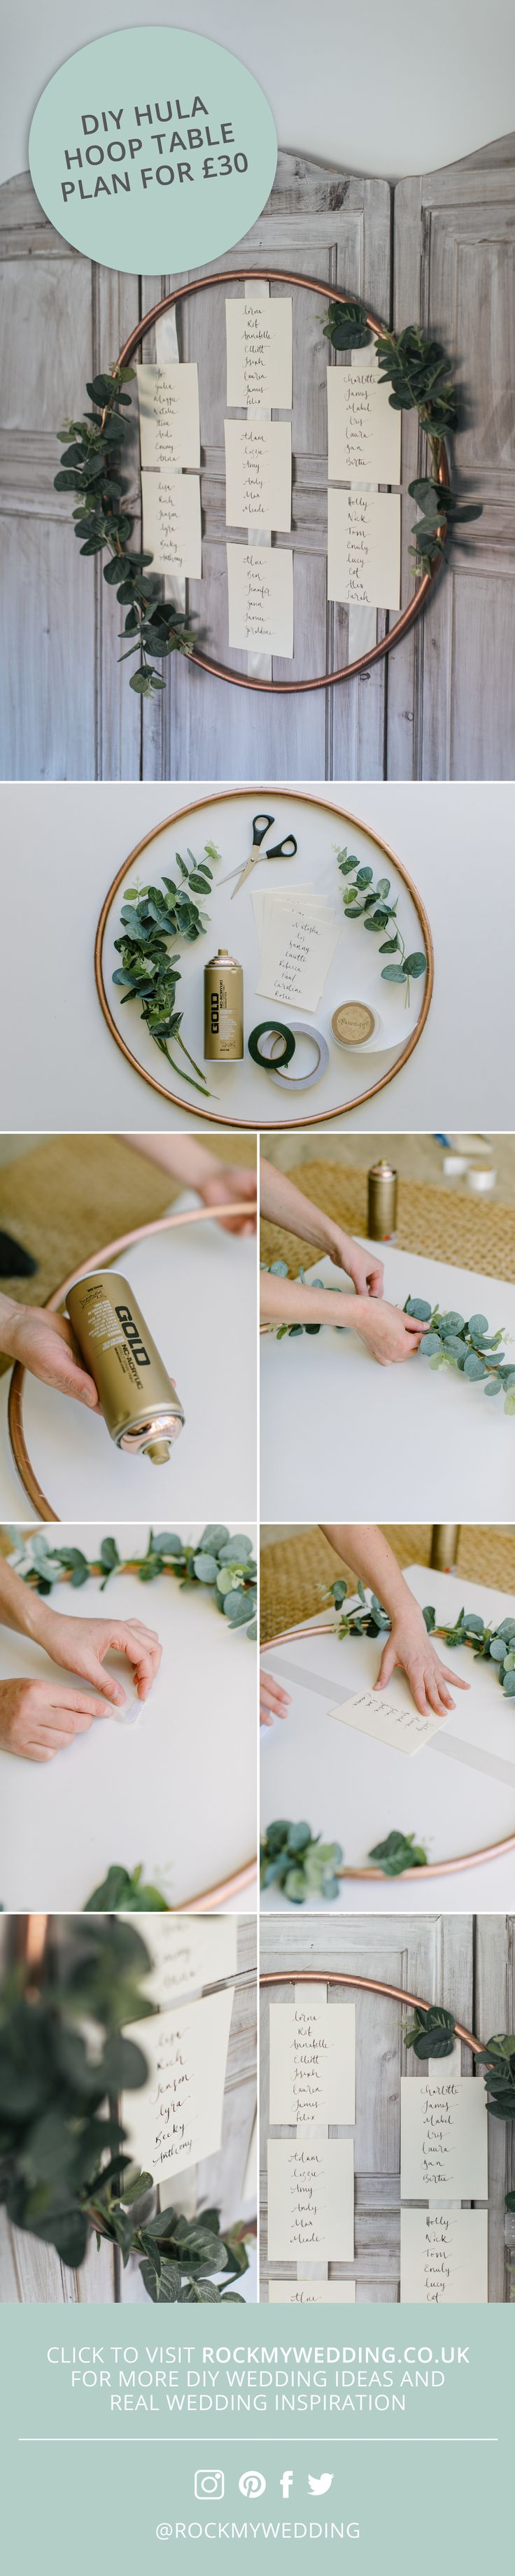 DIY Hula Hoop Table Plan for £30!